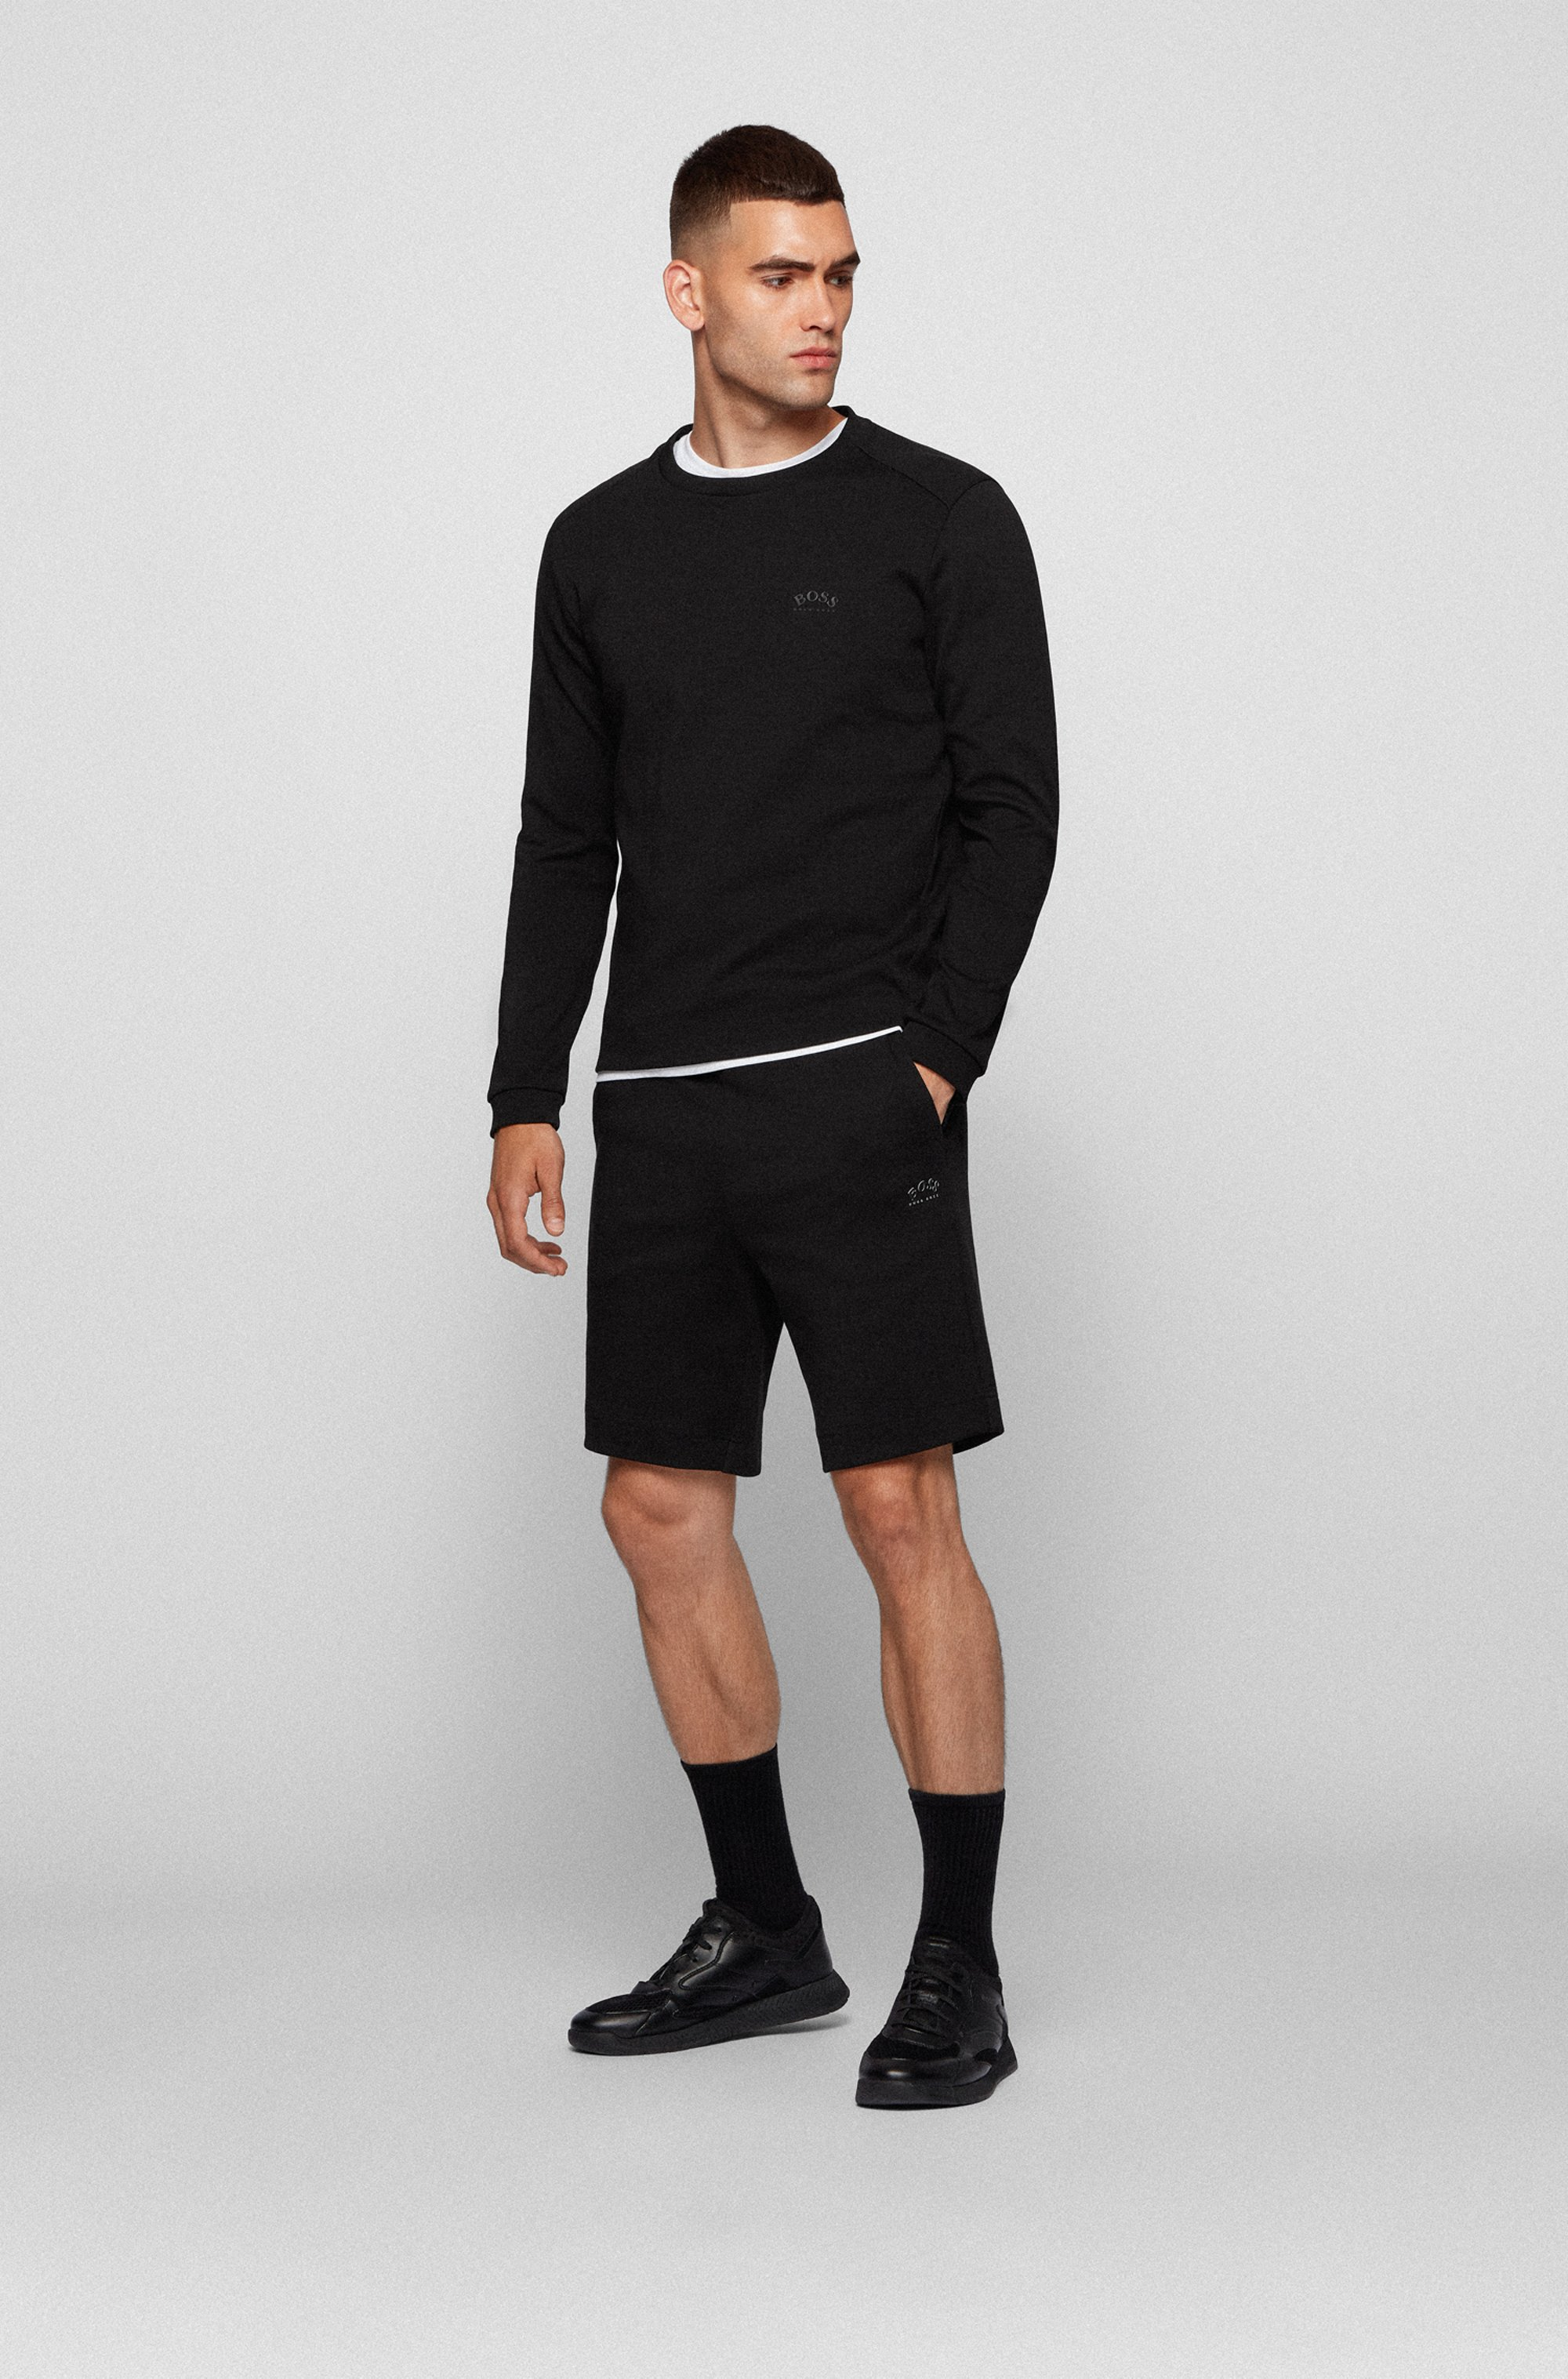 Drawstring shorts in cotton jersey with tonal piqué structure